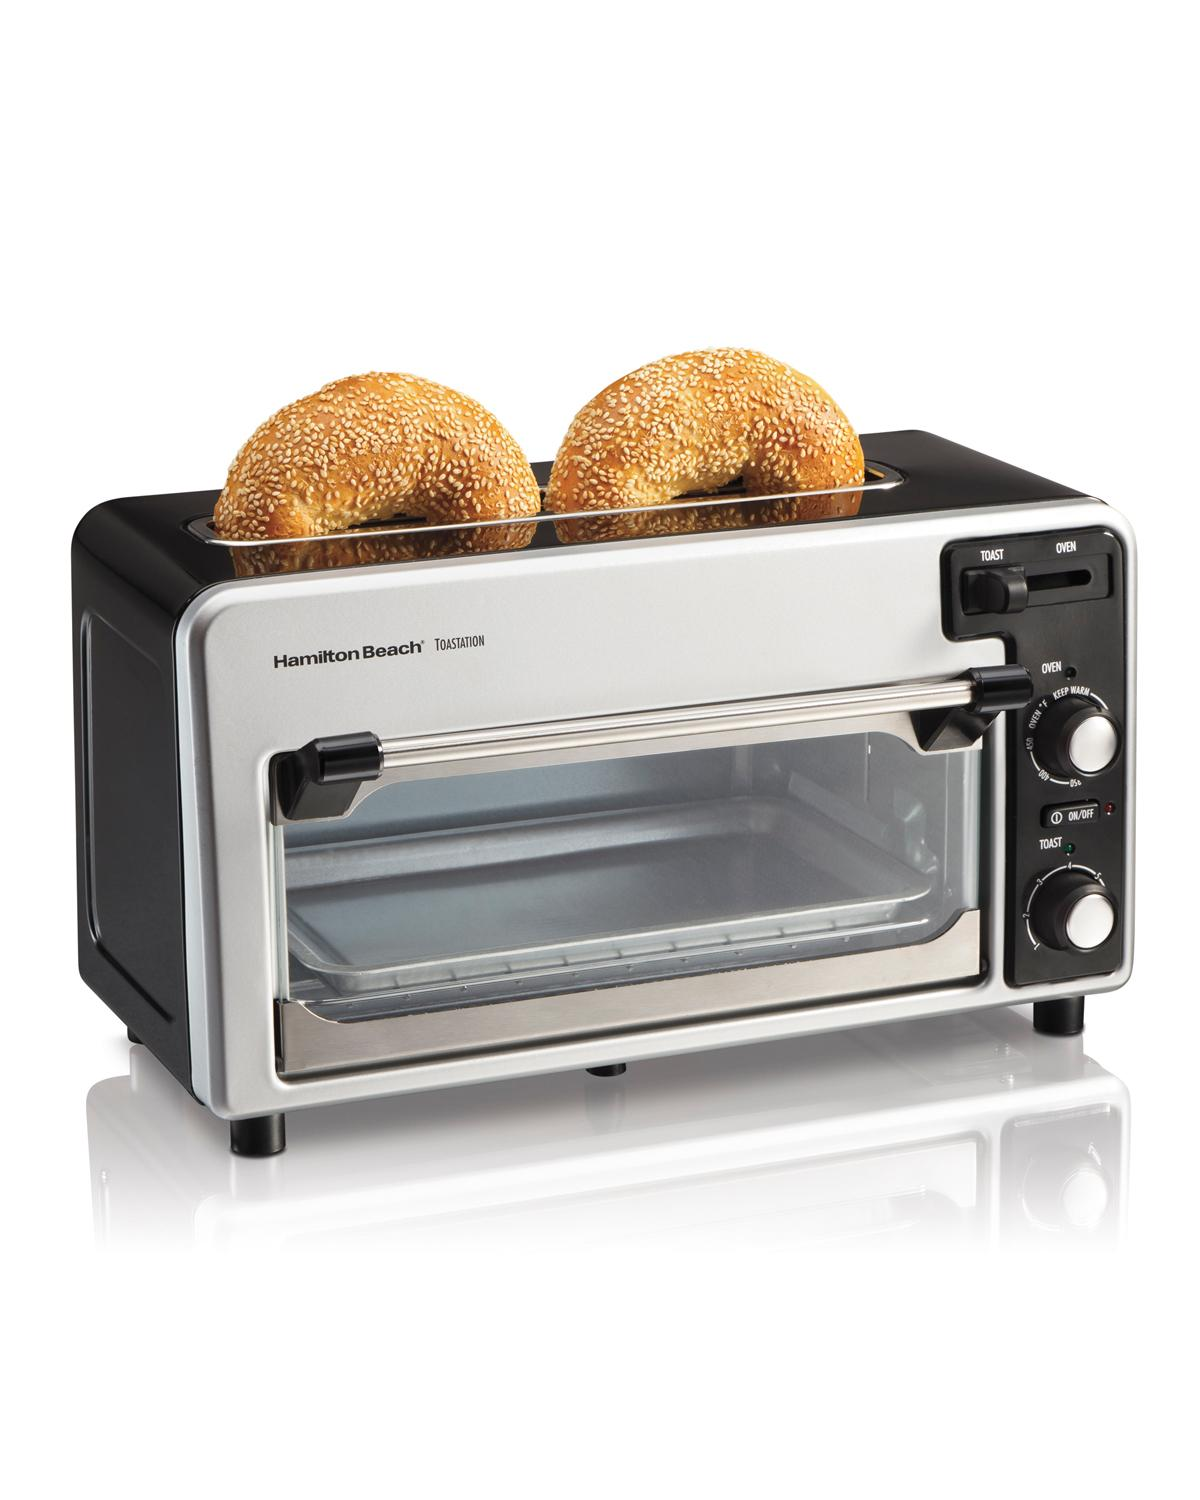 Countertop Oven Toaster : toasters slice 2 4 ovens convection hot and dog small bagel mini pizza ...